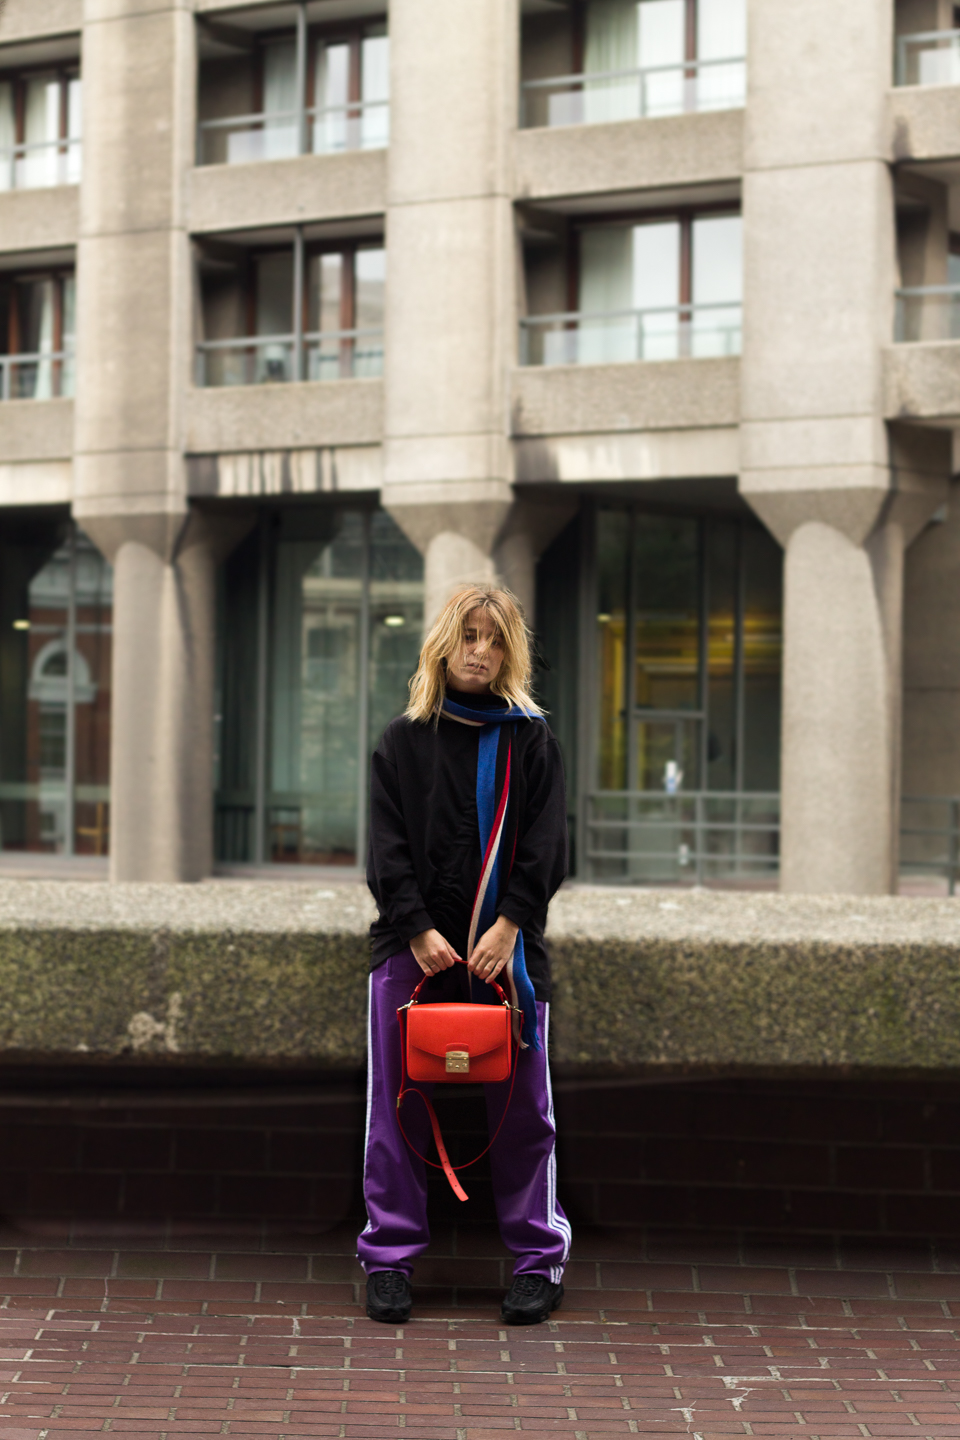 BARBICAN, ootd, London, Jogging, JW Anderson, purple